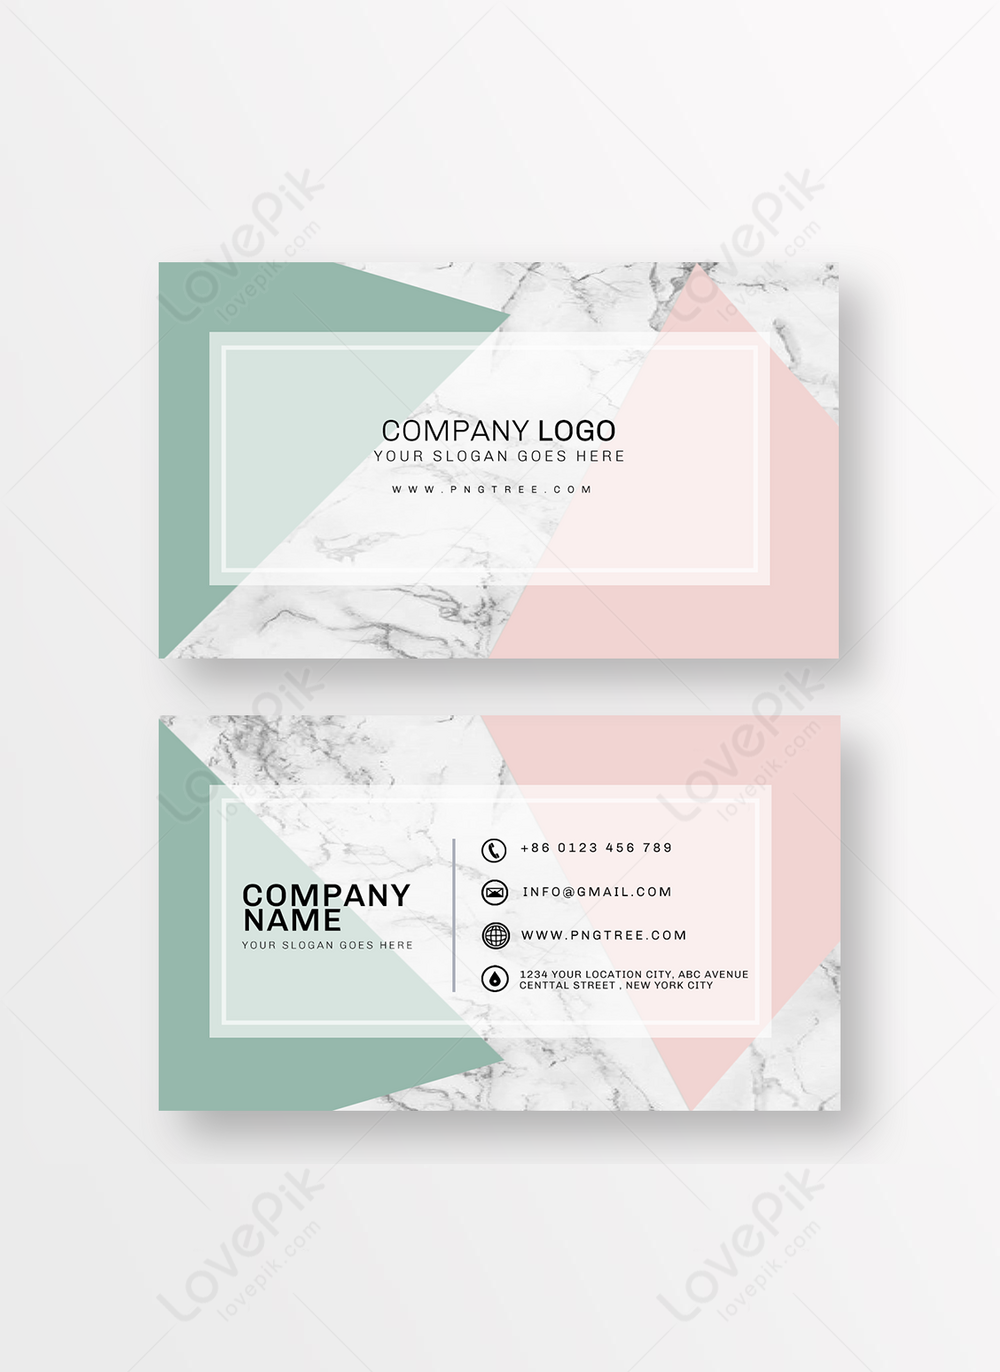 Pink Green Marble Background Business Card Template Image Picture Free Download 465048491 Lovepik Com